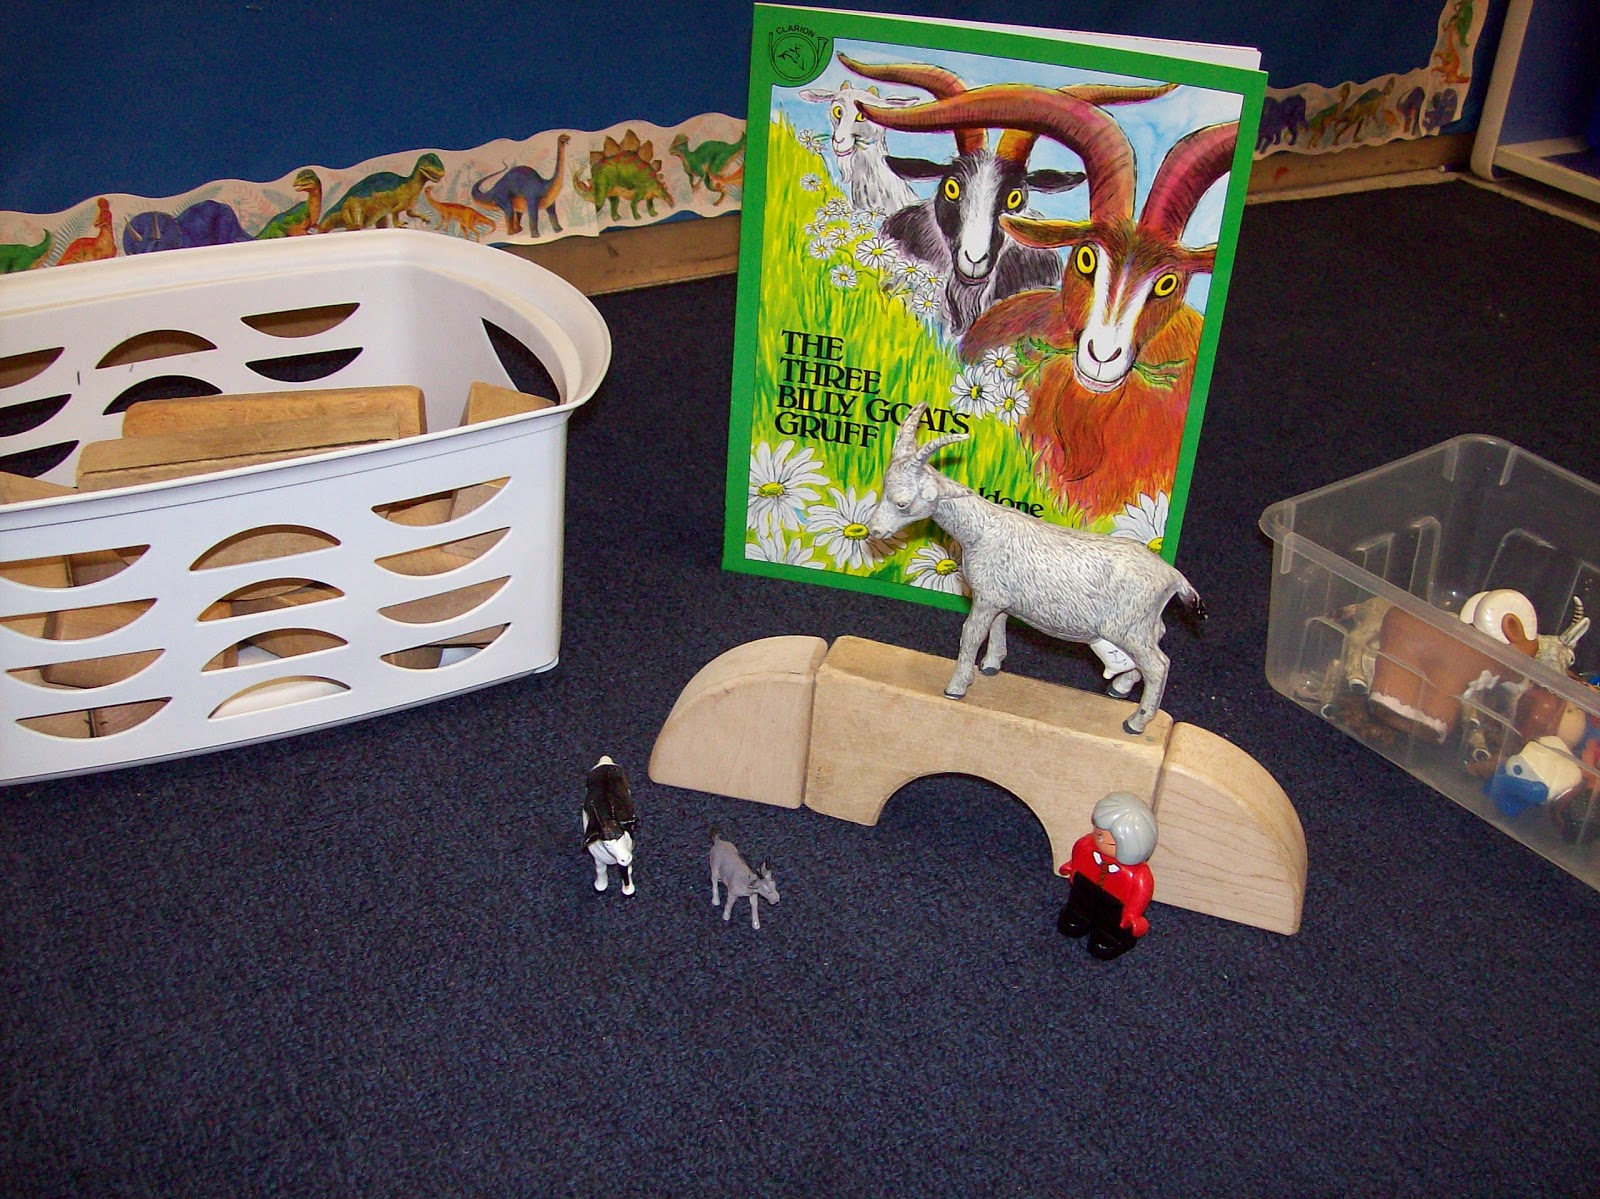 Learning And Teaching With Preschoolers Three Billy Goats